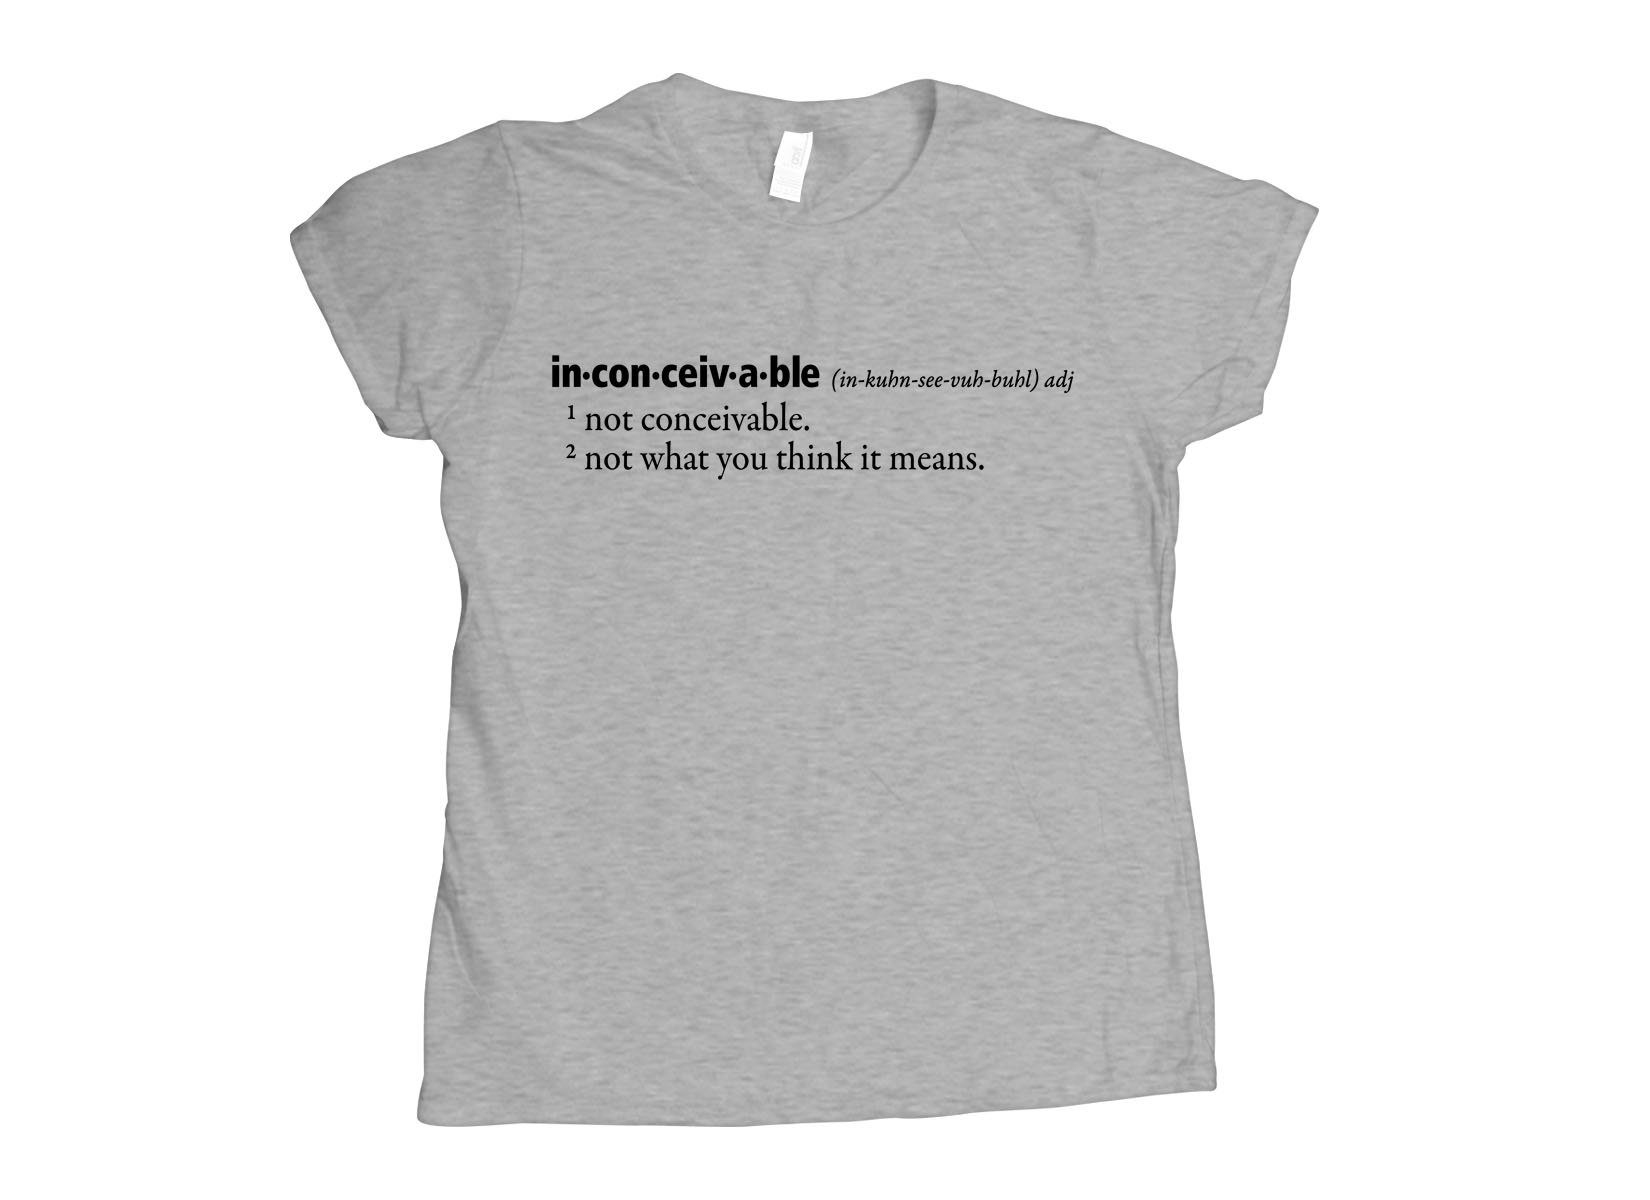 Inconceivable Definition on Womens T-Shirt